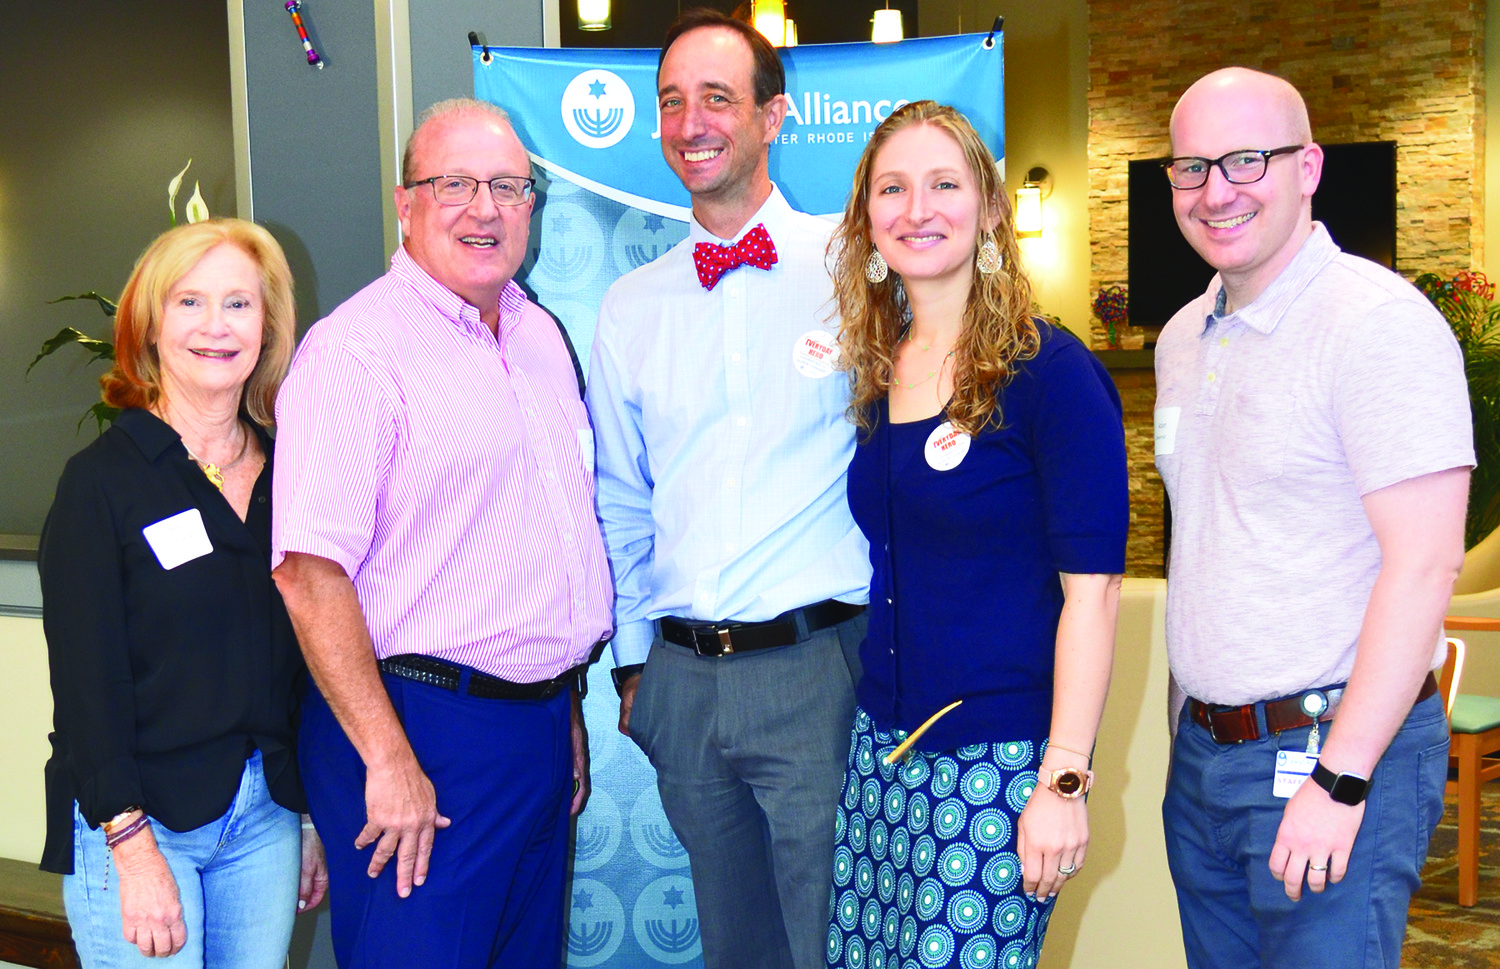 Grateful for a successful event are (left to right) Mitzi Berkelhammer, chair of the Alliance board; Jamie Pious, campaign chair; Will and Aliza Krieger, Super Sunday chairs, 